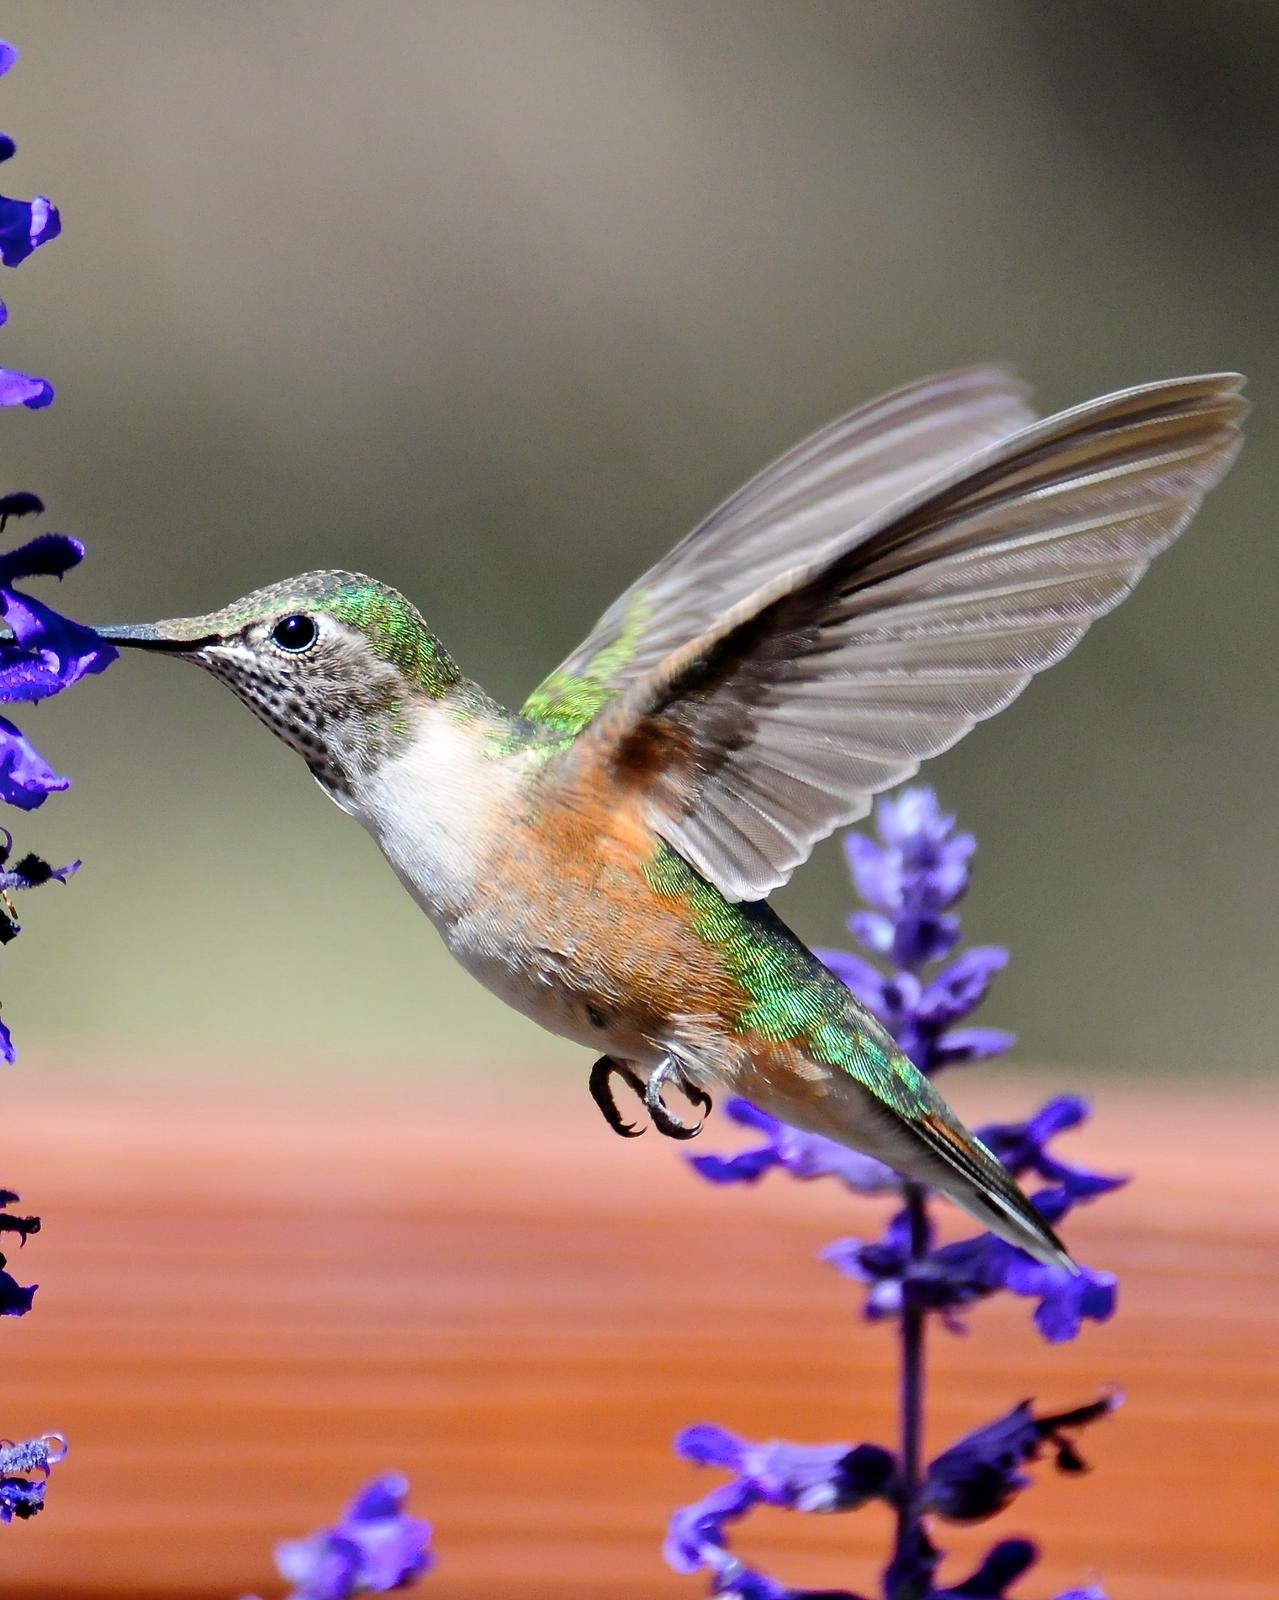 Broad-tailed Hummingbird Photo by Gerald Friesen